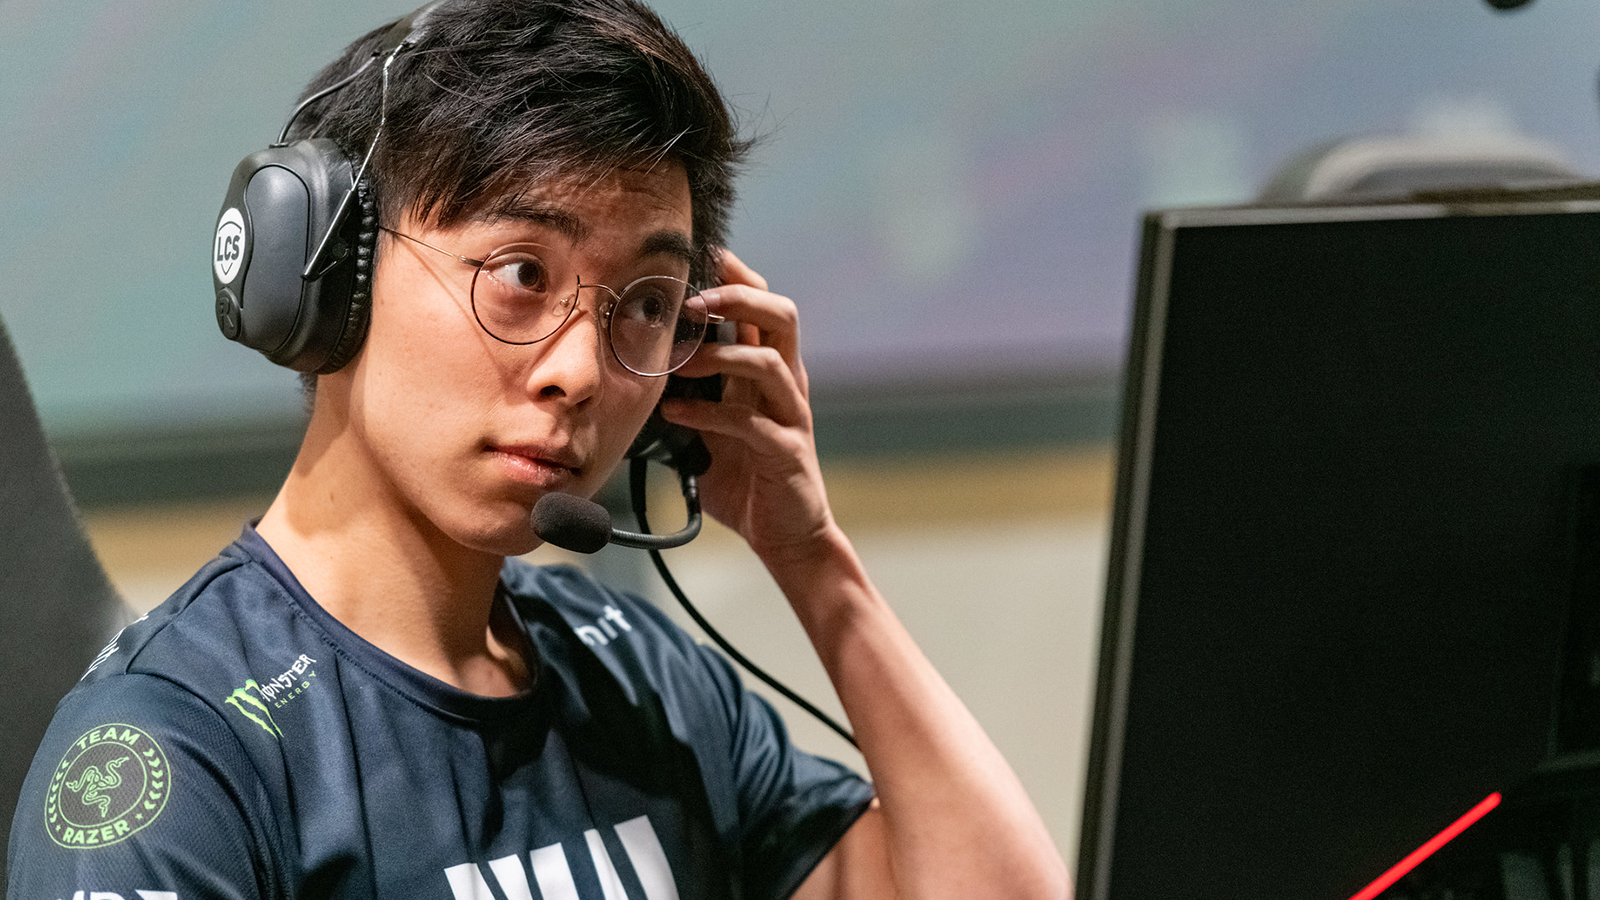 Deftly plays for Evil Geniuses League of Legends in LCS Lock In.